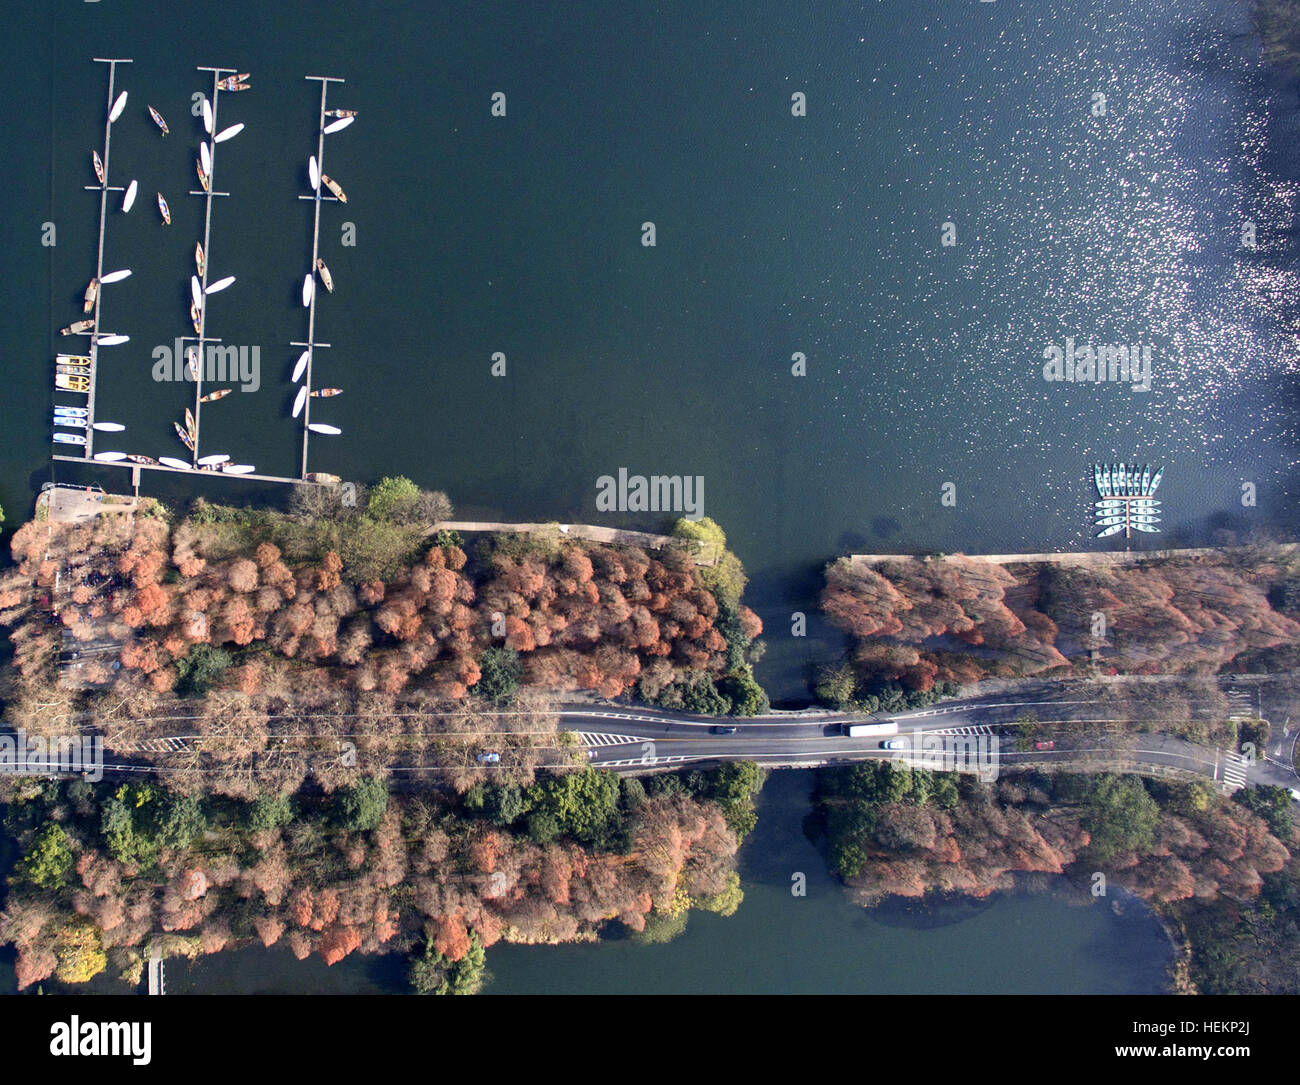 Hangzhou. 23rd Dec, 2016. Aerial photo taken on Dec. 23, 2016 shows the Yanggongdi scenic spot of the West Lake - Stock Image